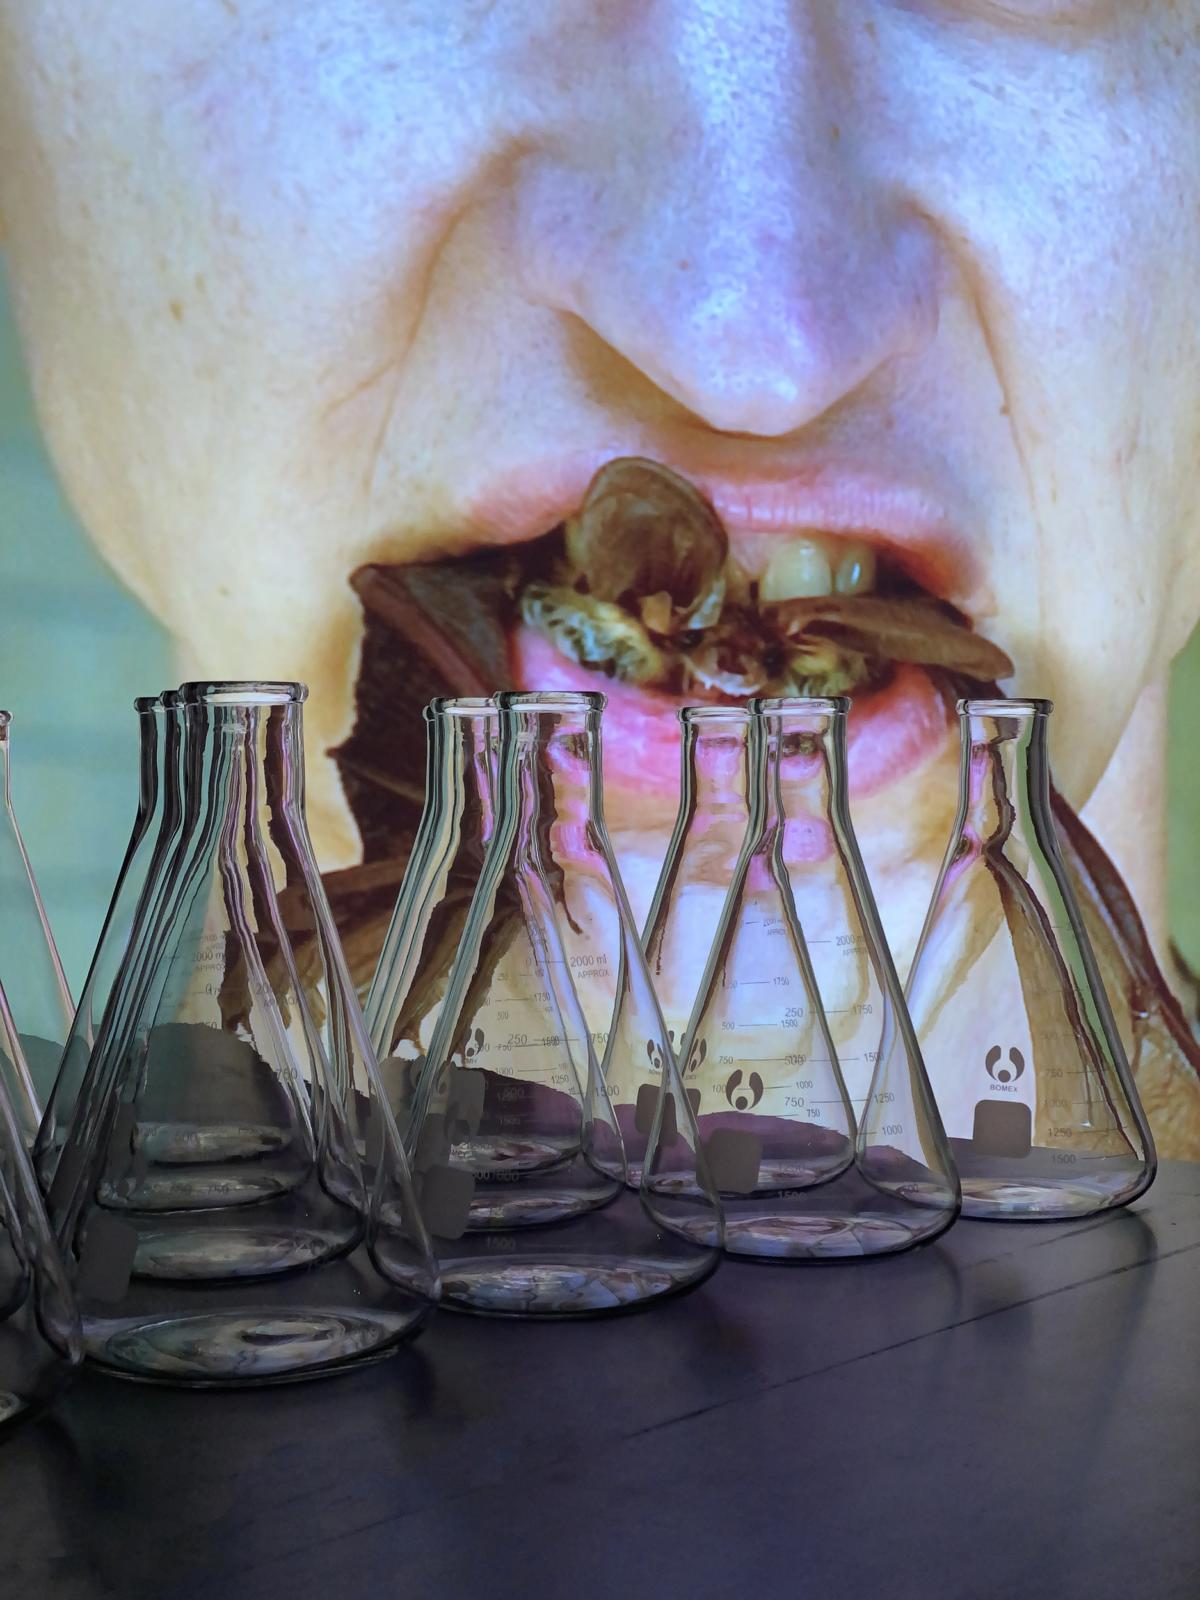 How One Artist Is Using Performance to Question the Monopoly of Big Pharma